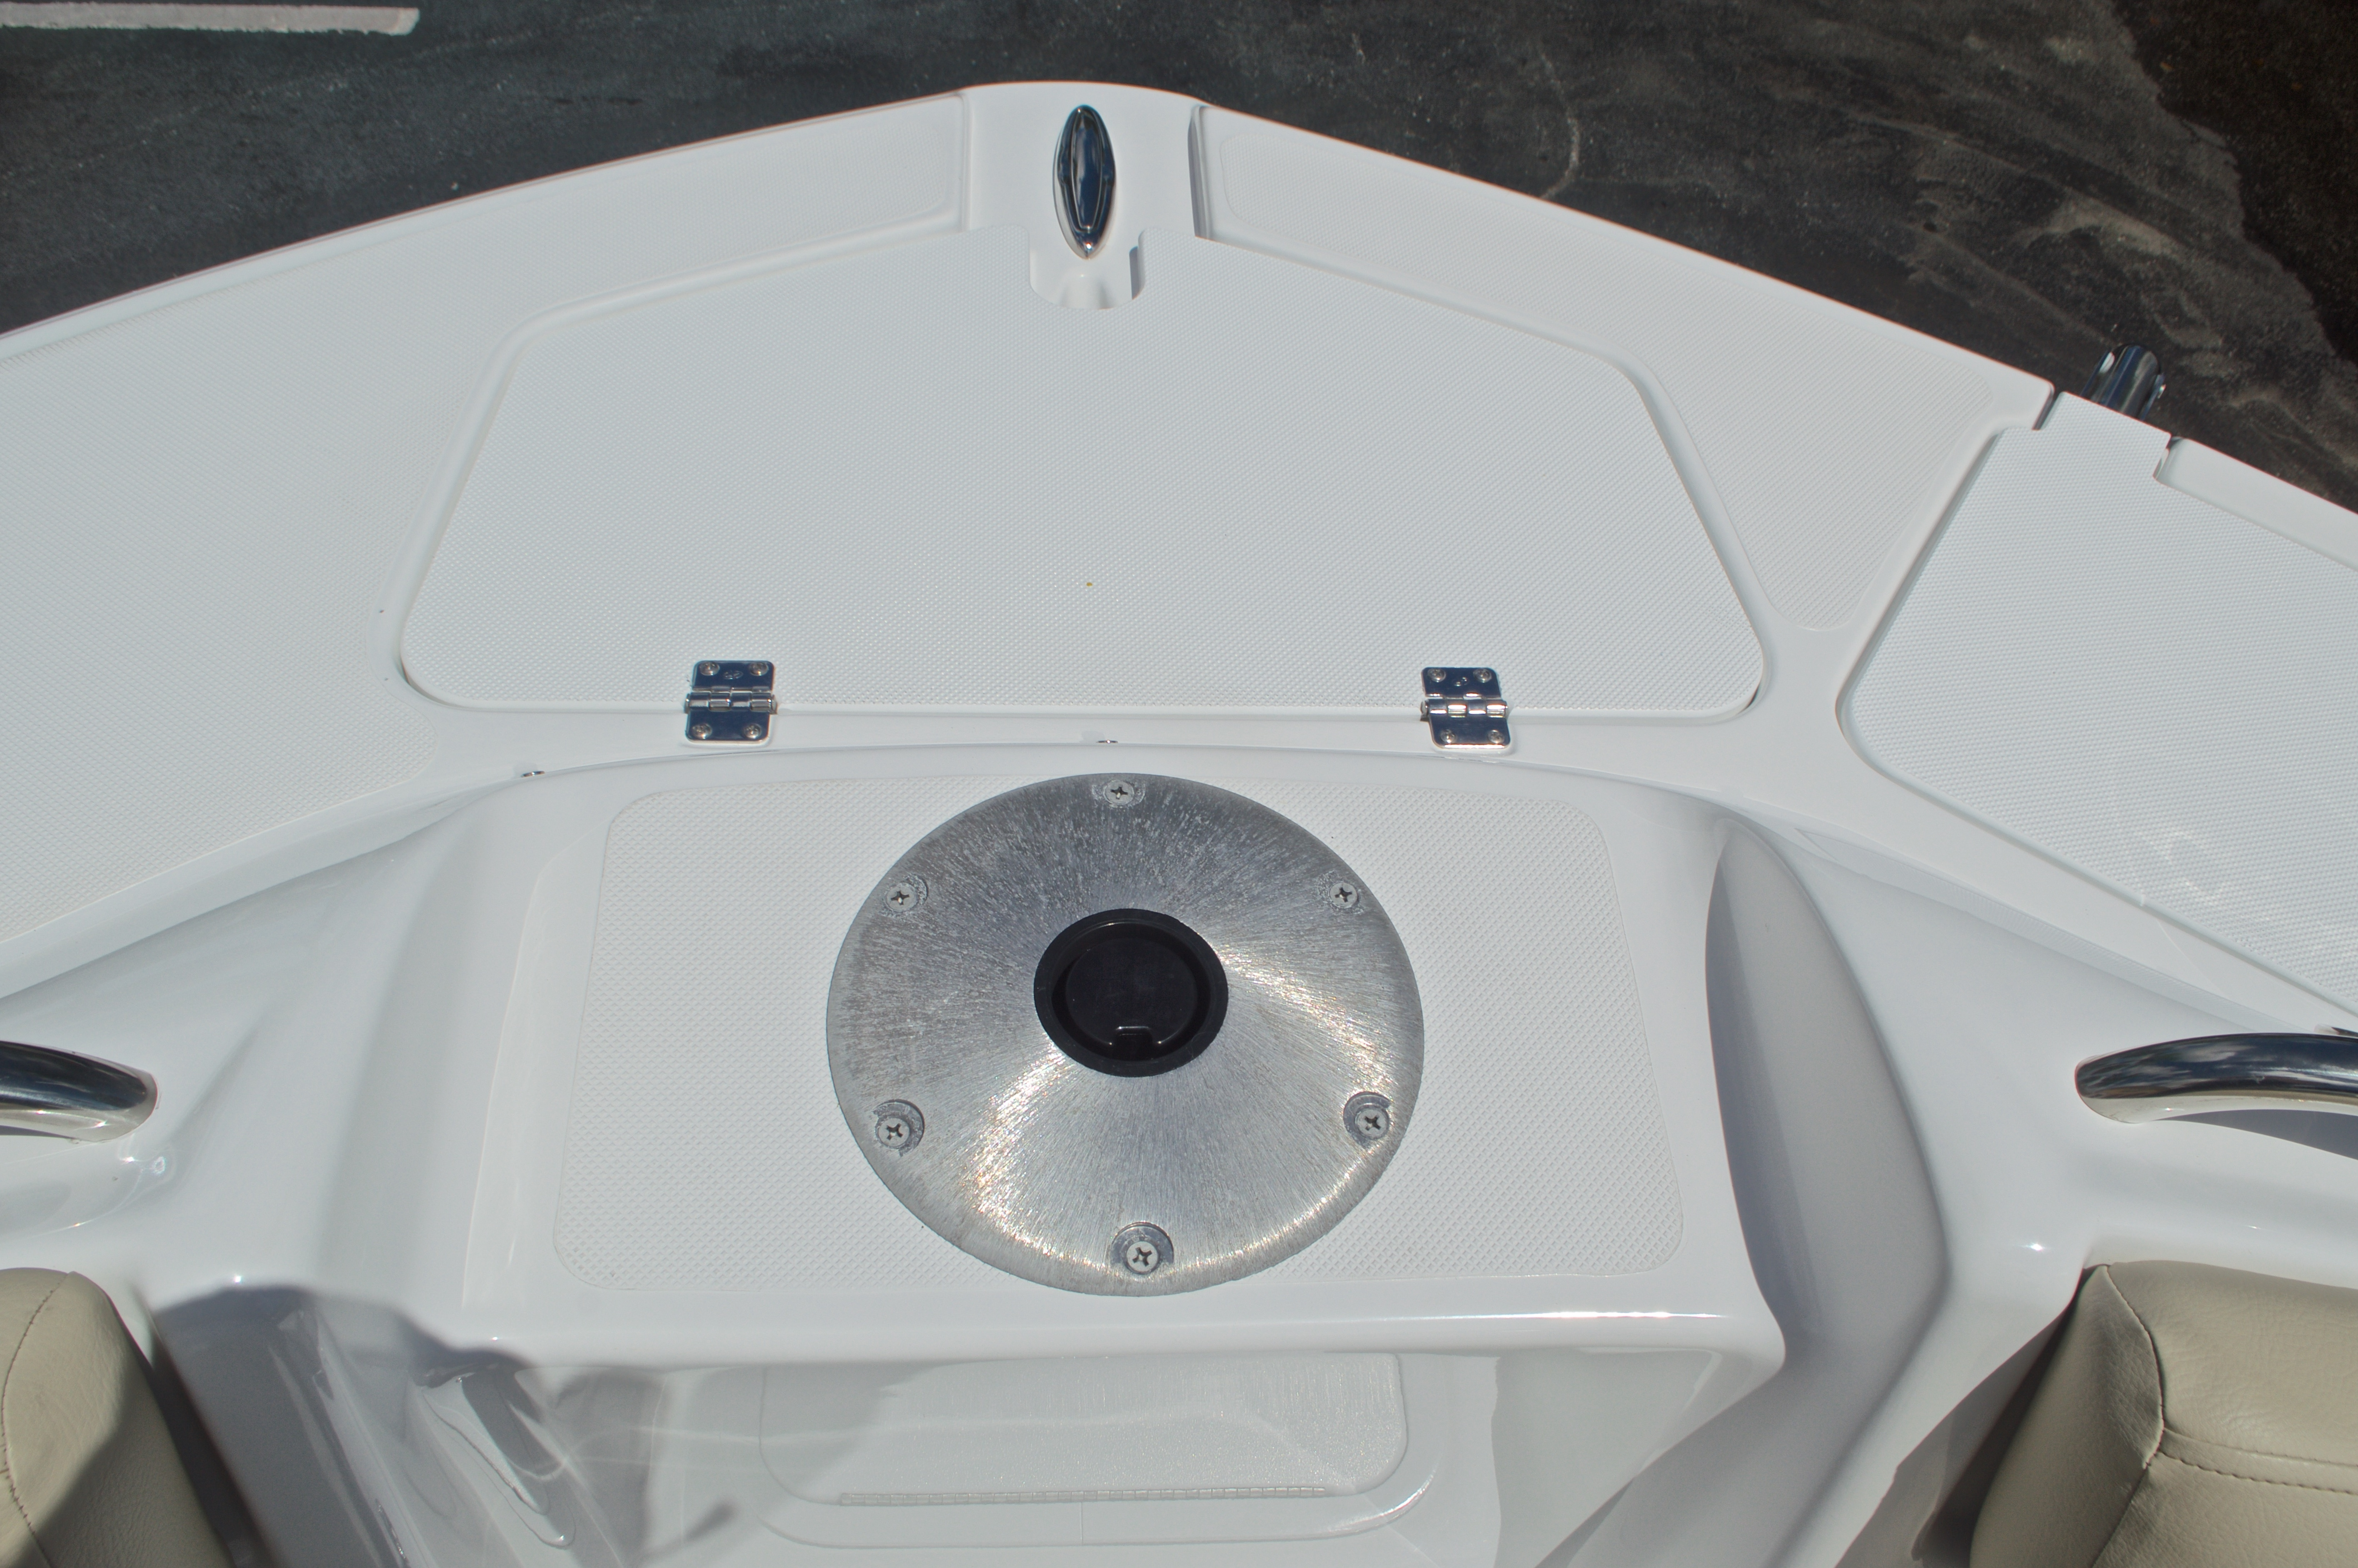 Thumbnail 53 for New 2017 Hurricane SunDeck SD 2400 OB boat for sale in West Palm Beach, FL